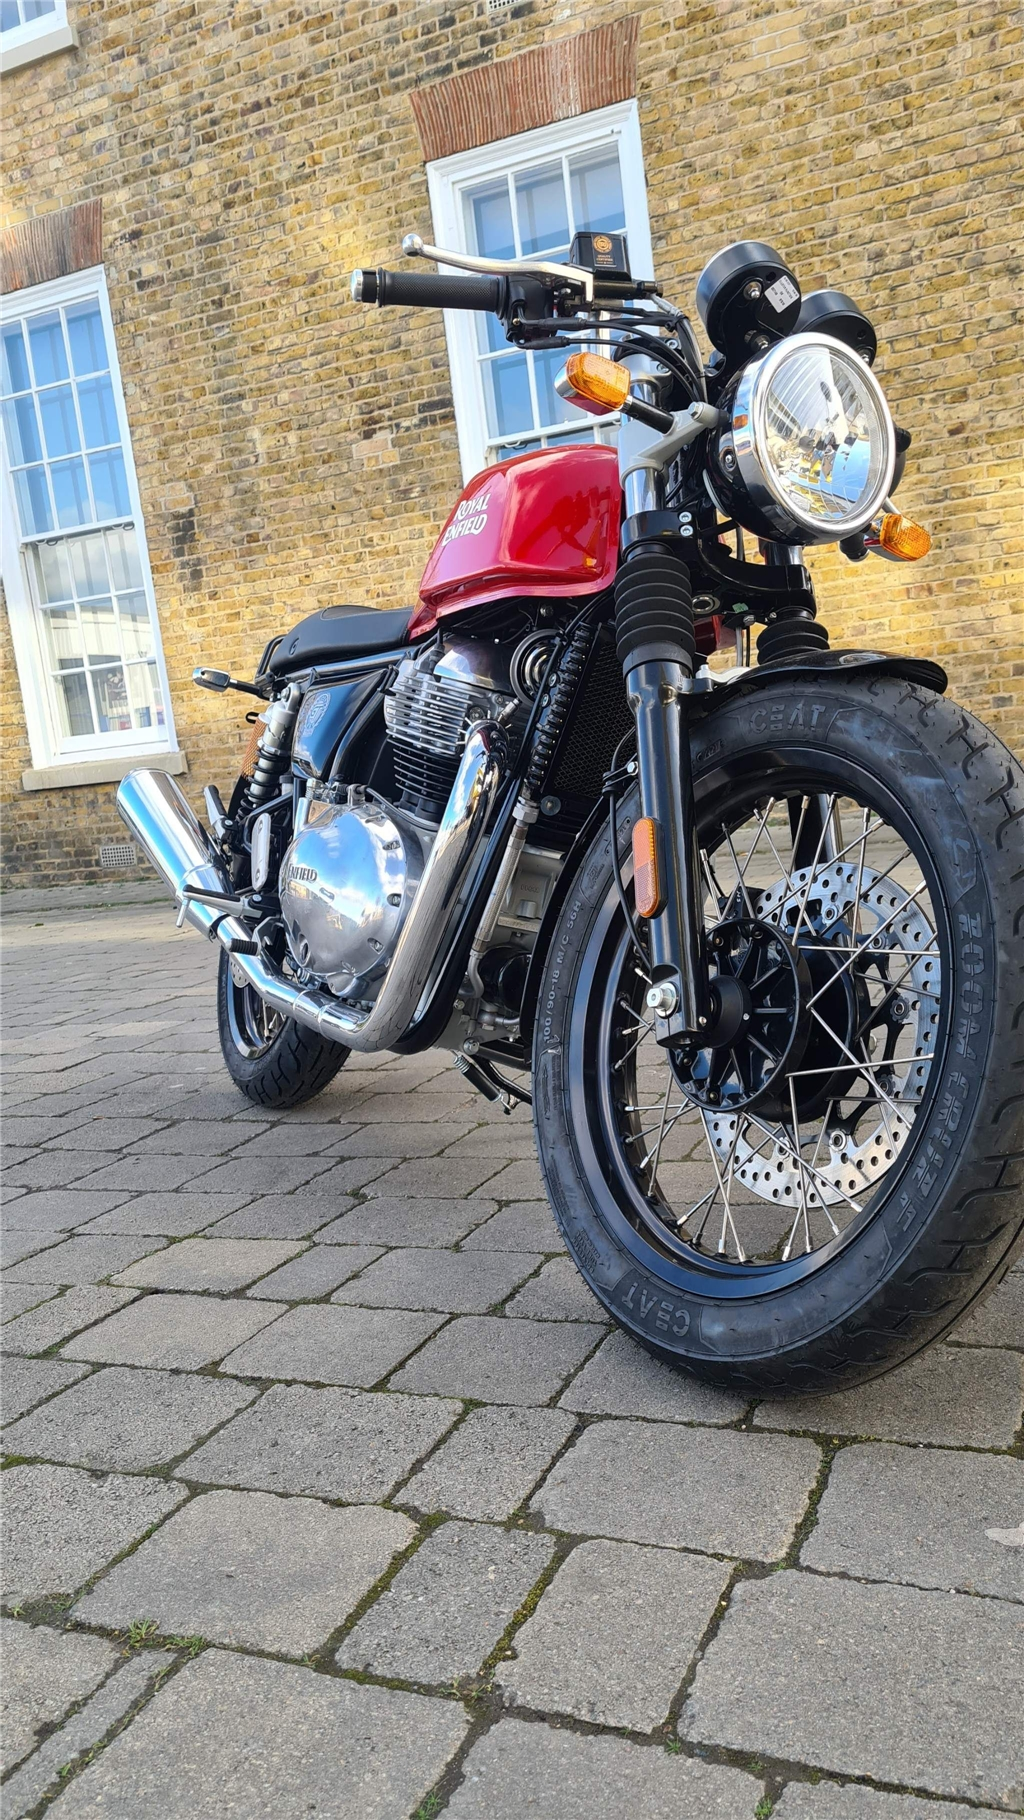 Royal Enfield Continental GT 650 Twin 650 ABS - Image 5